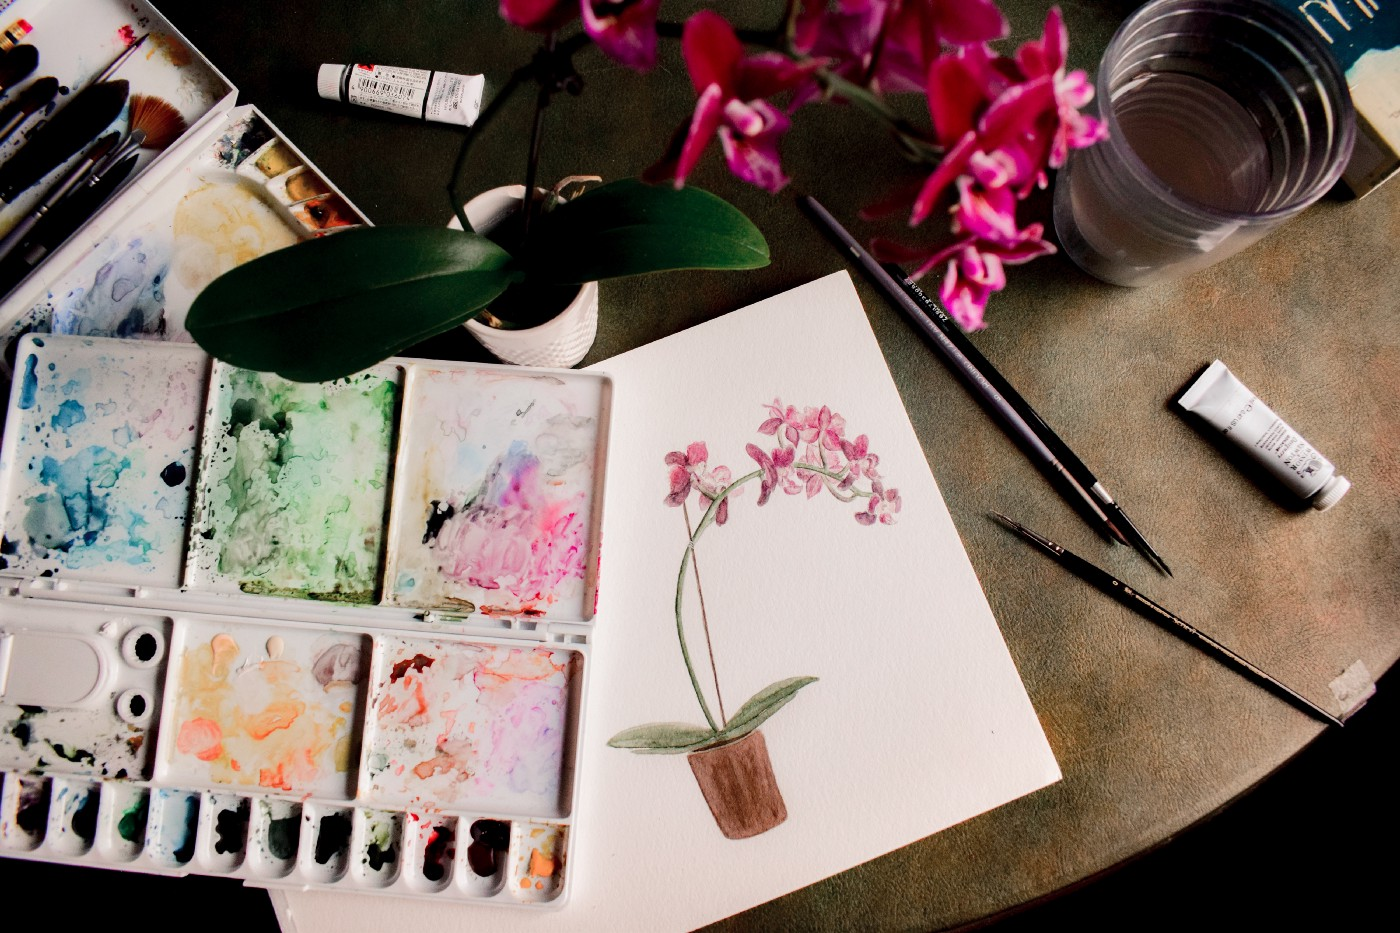 Tabletop of art supplies. Creating art for mental wellness and joy.